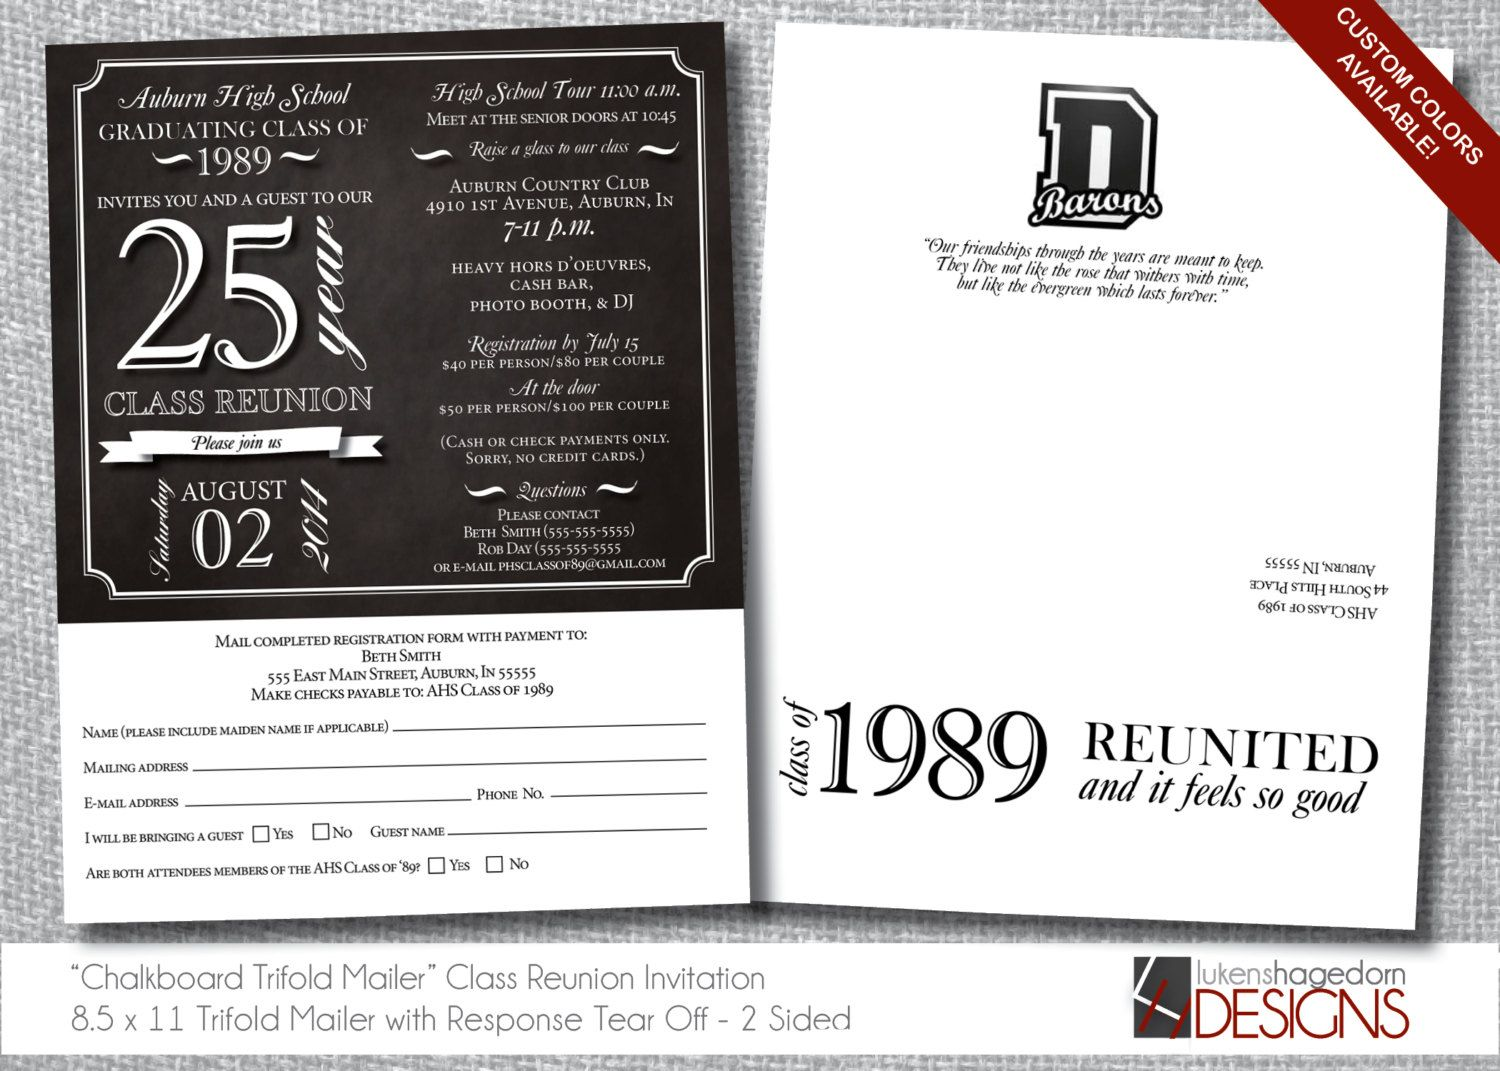 Class reunion invitation trifold letter by lukenshagedorndesign class reunion invitation trifold letter by lukenshagedorndesign spiritdancerdesigns Images